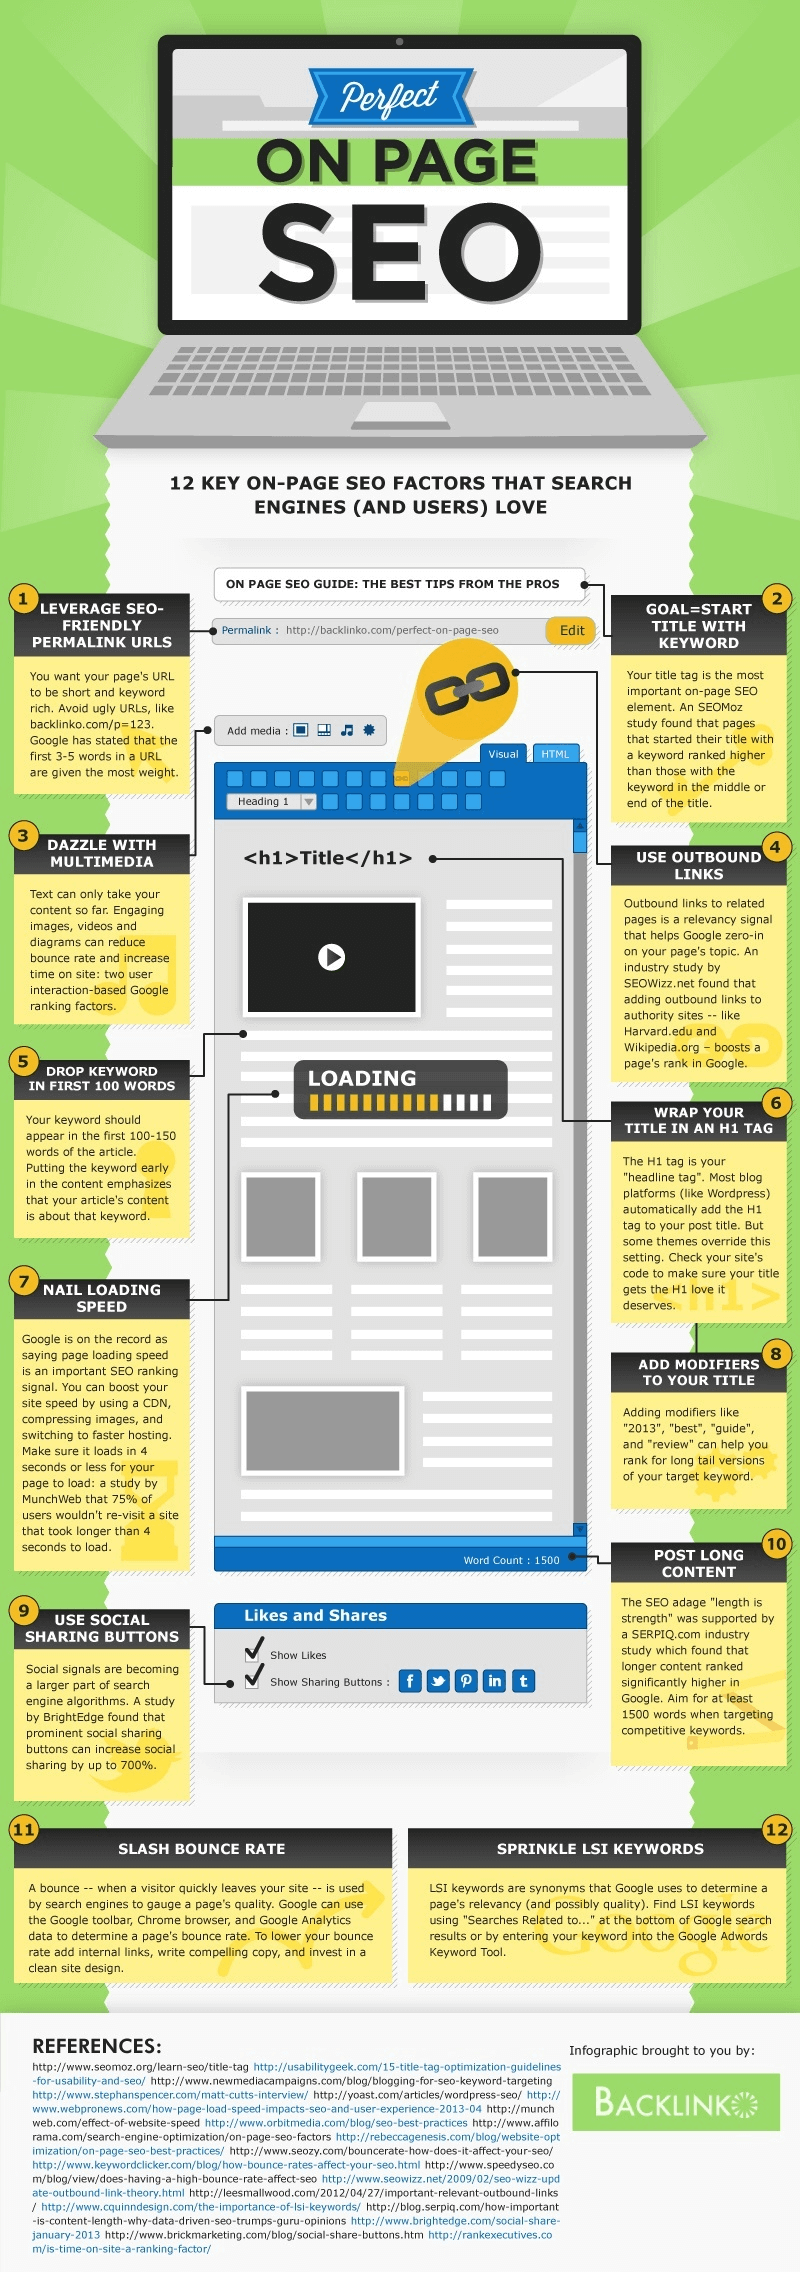 Large infographic for on-page SEO